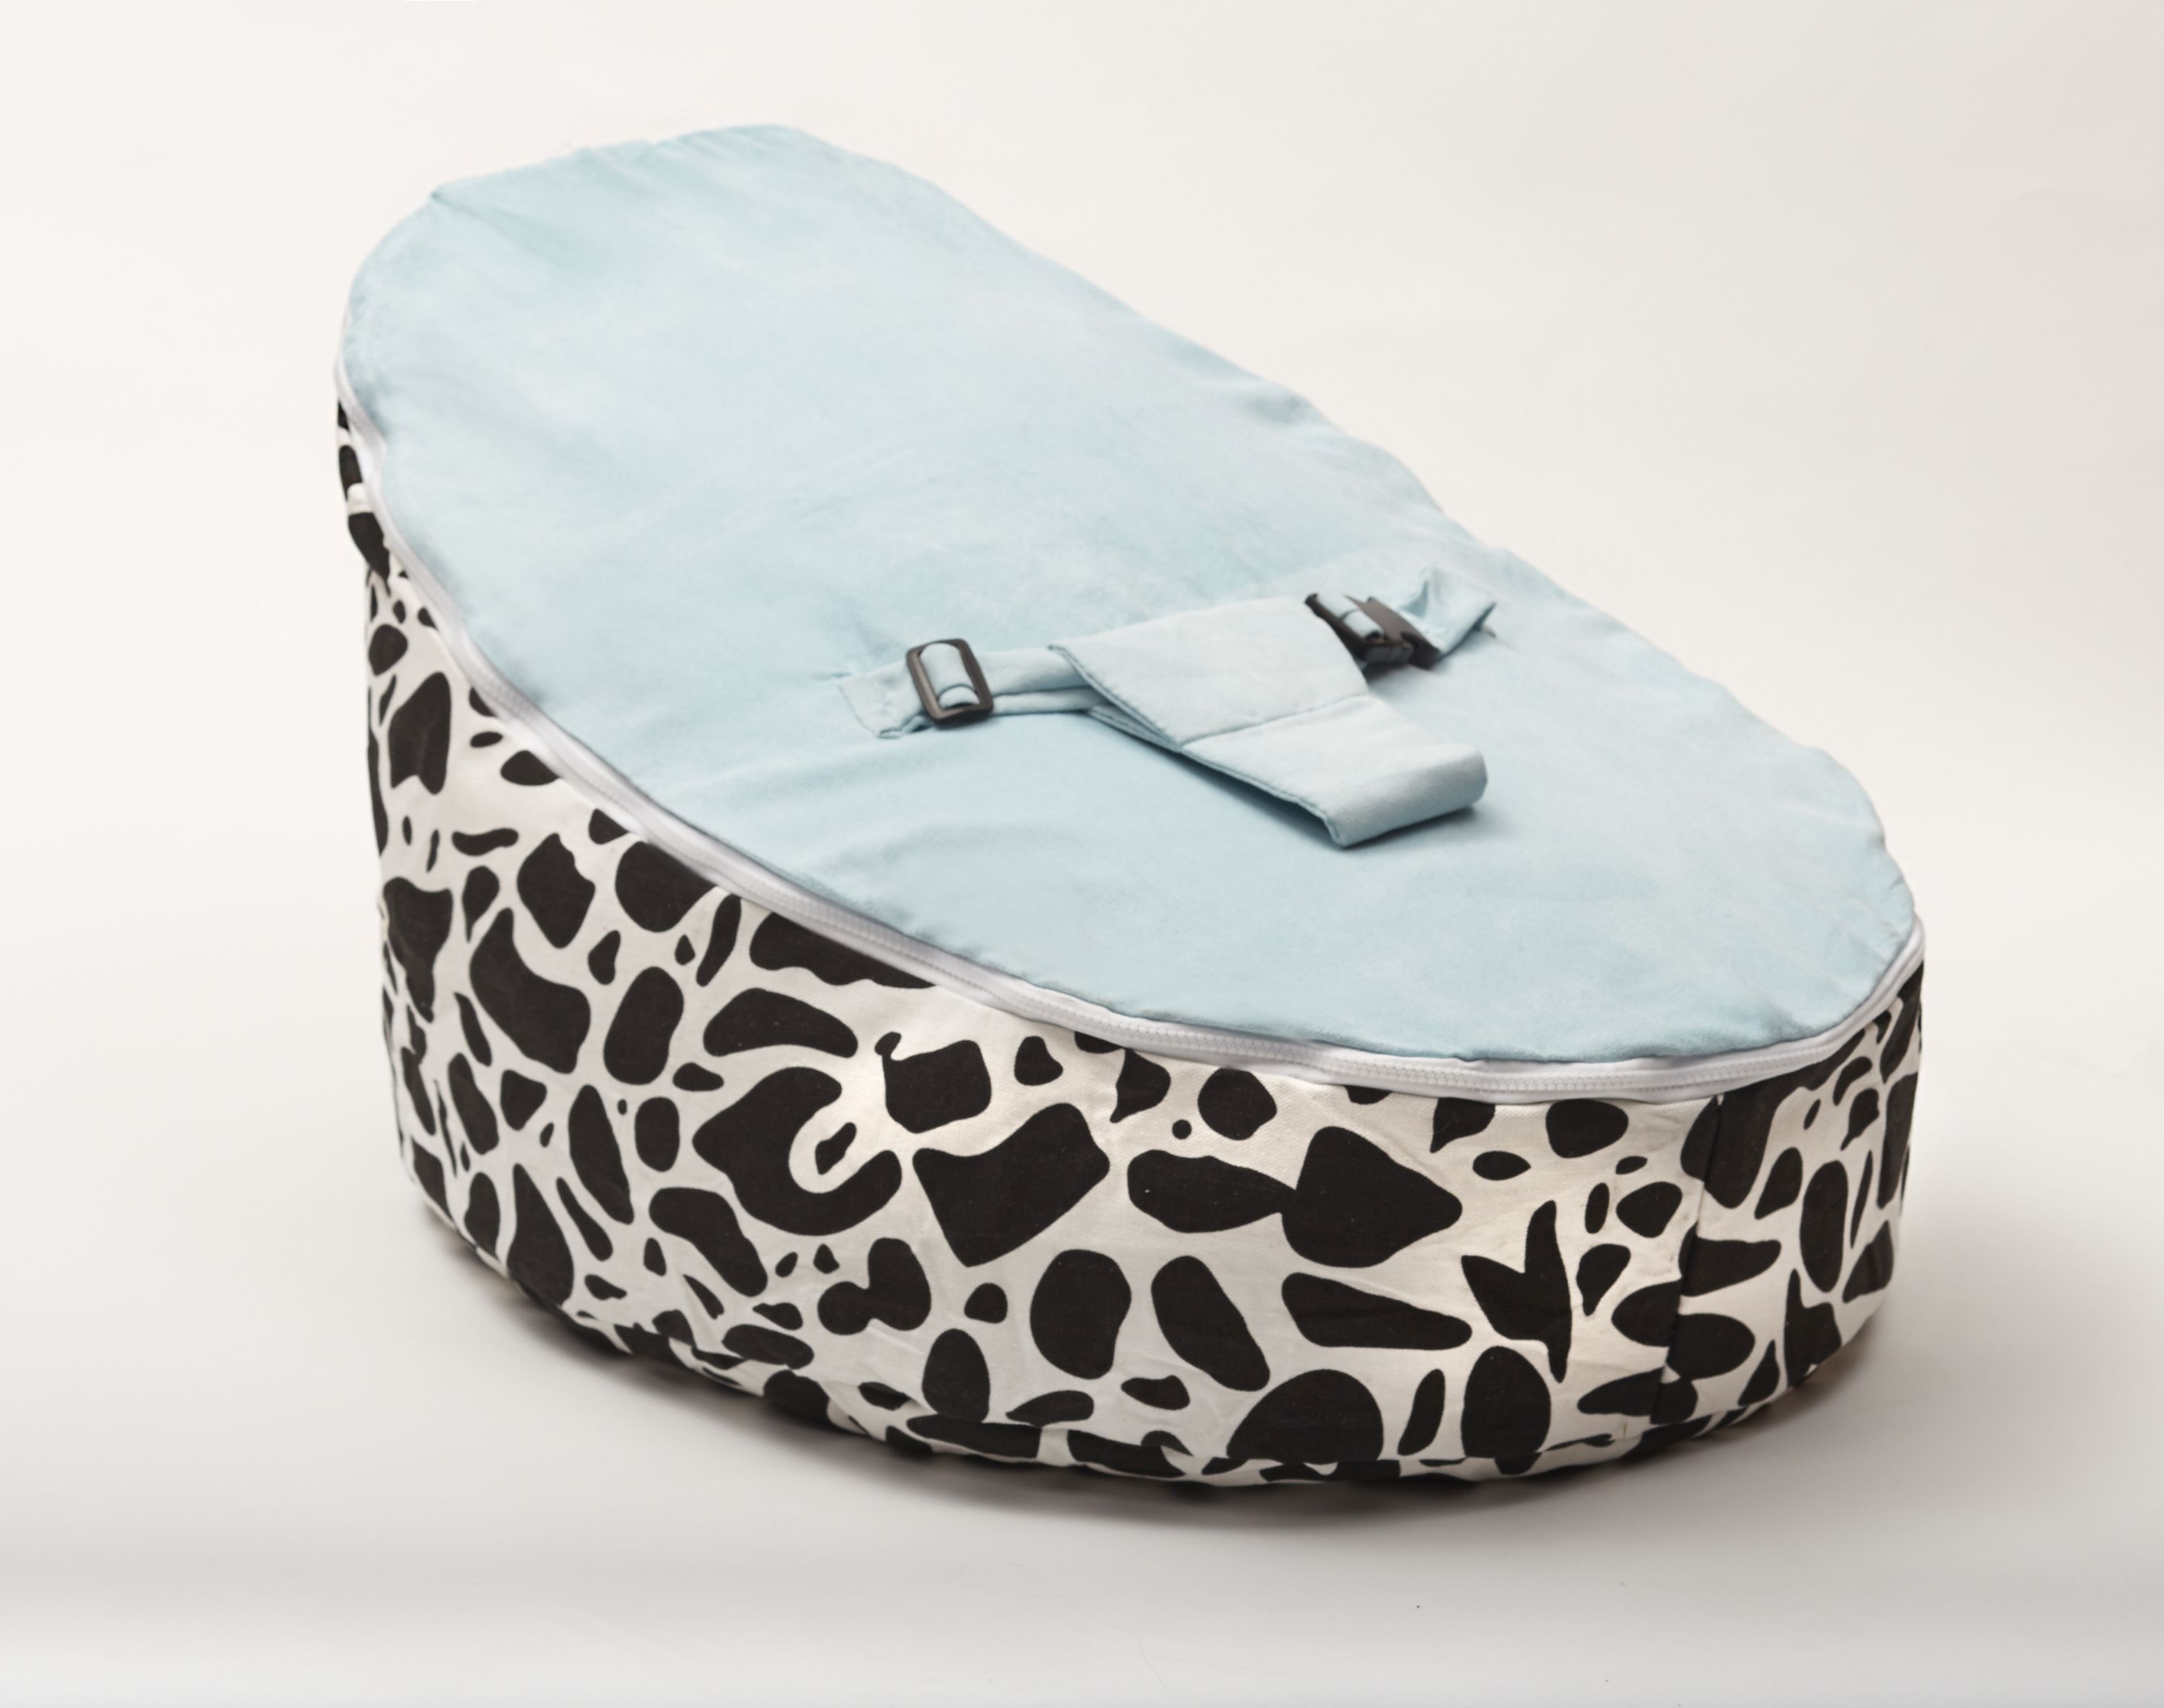 Astounding Pin By Gina Perry On Babies Bean Bags Australia Kids Camellatalisay Diy Chair Ideas Camellatalisaycom